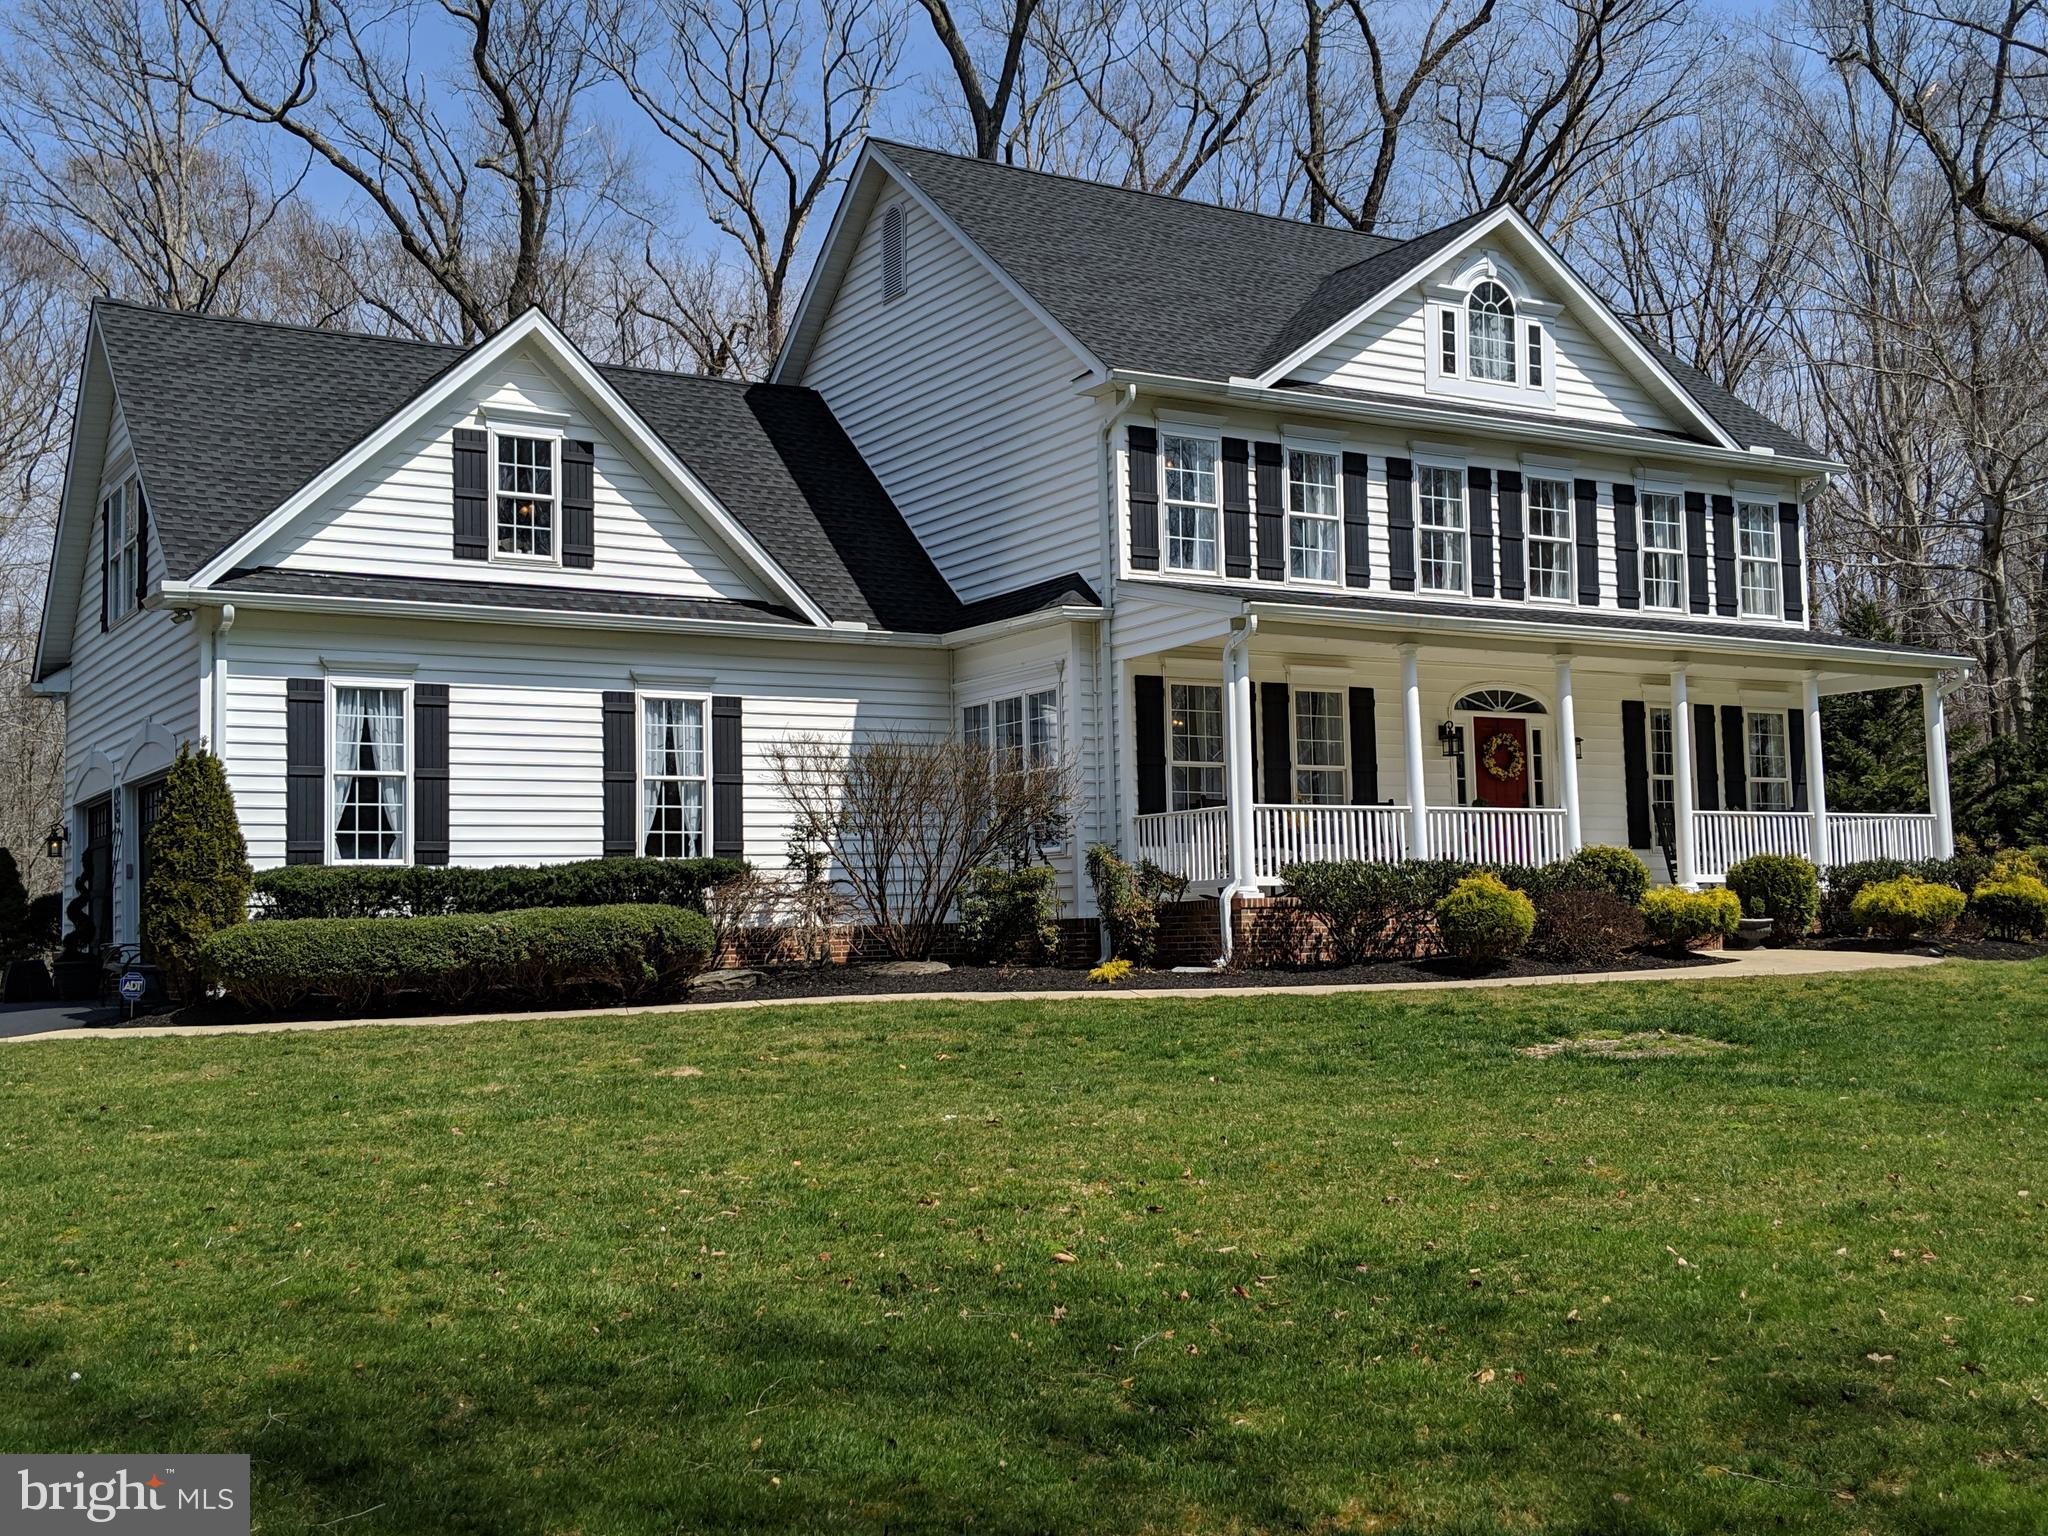 5475 WILLIAM STONE PLACE, WELCOME, MD 20693